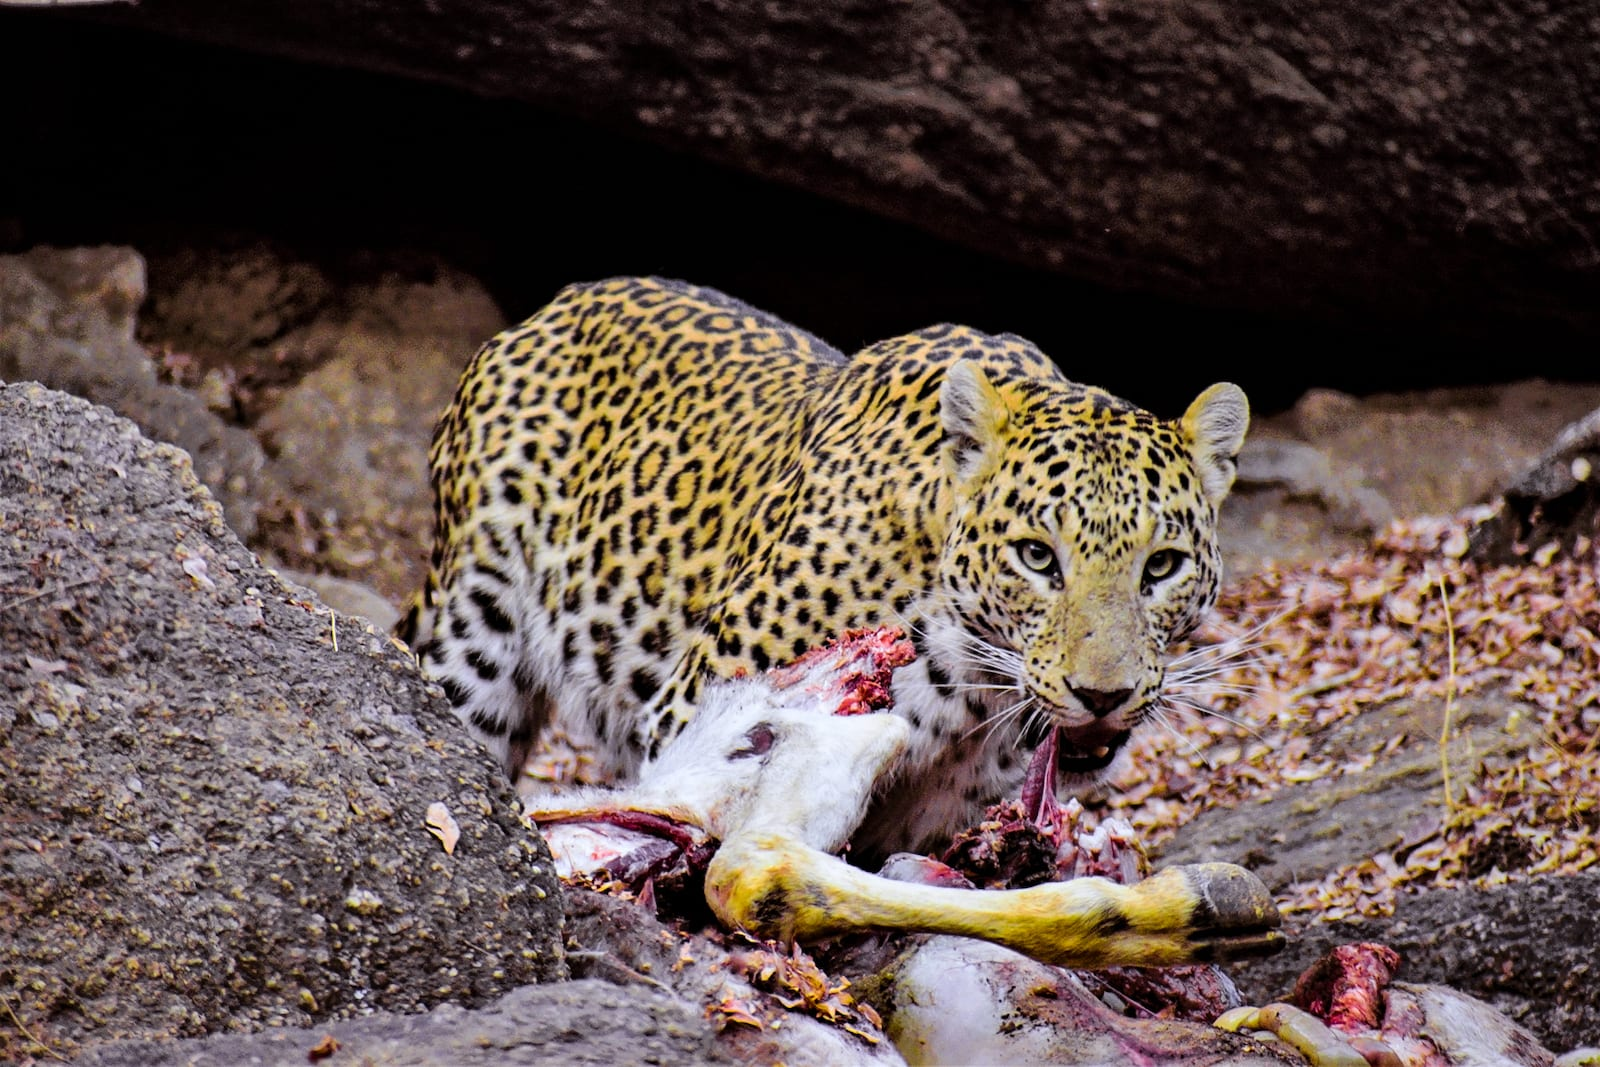 """Noor feeds on a cow she dragged from a cattle shelter outside the sanctuary. She enjoys the tolerance that locals have towards large cats. """"I took this photograph in 2018 when she had two young cubs to feed,"""" says Bishnoi.  According to a wildlife census carried out in 2020, an estimated 136 leopards (Panthera pardus) are found in and around the Kumbhalgarh sanctuary. Those that live on the periphery of the sanctuary may occasionally take a goat or a cow, especially when they have hungry cubs to feed. Leopards are opportunistic scavengers too; they will not pass up an opportunity to feed on a carcass, such as a buffalo (next image) dumped by villagers near the boundary wall of the sanctuary."""